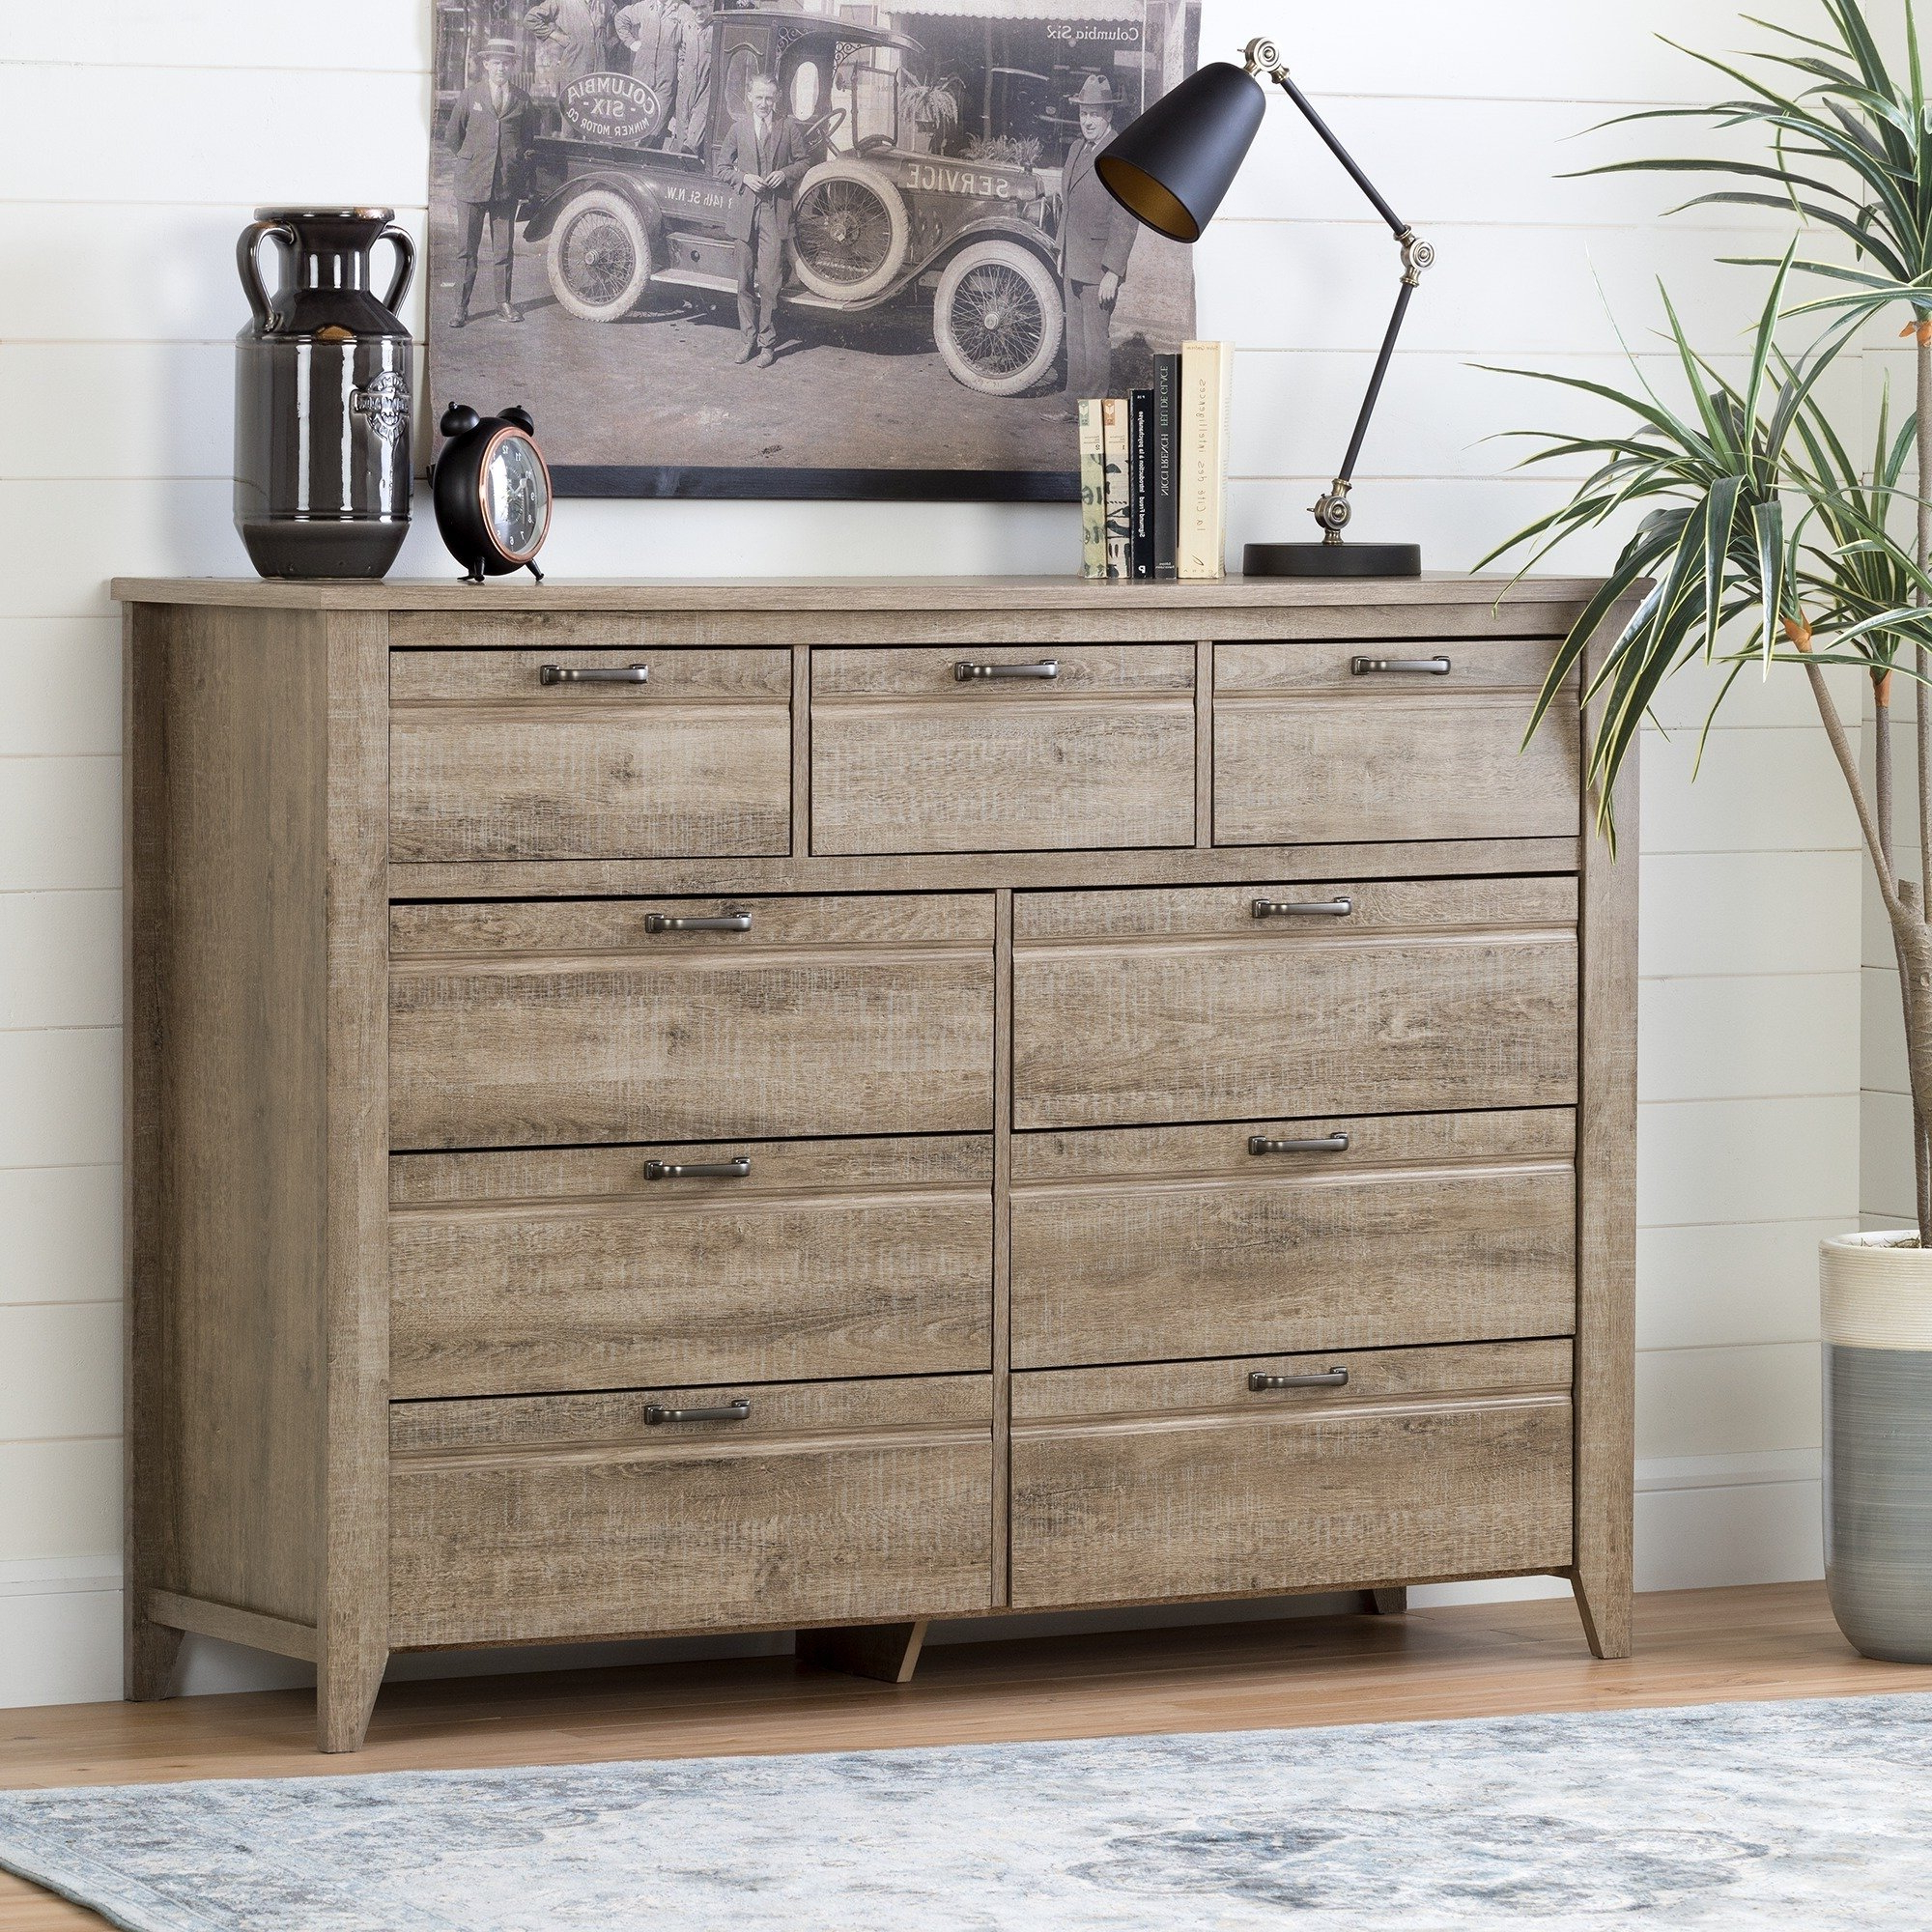 Most Popular Shop South Shore Lionel Sideboard, Weathered Oak – Free Shipping In Natural South Pine Sideboards (View 14 of 20)